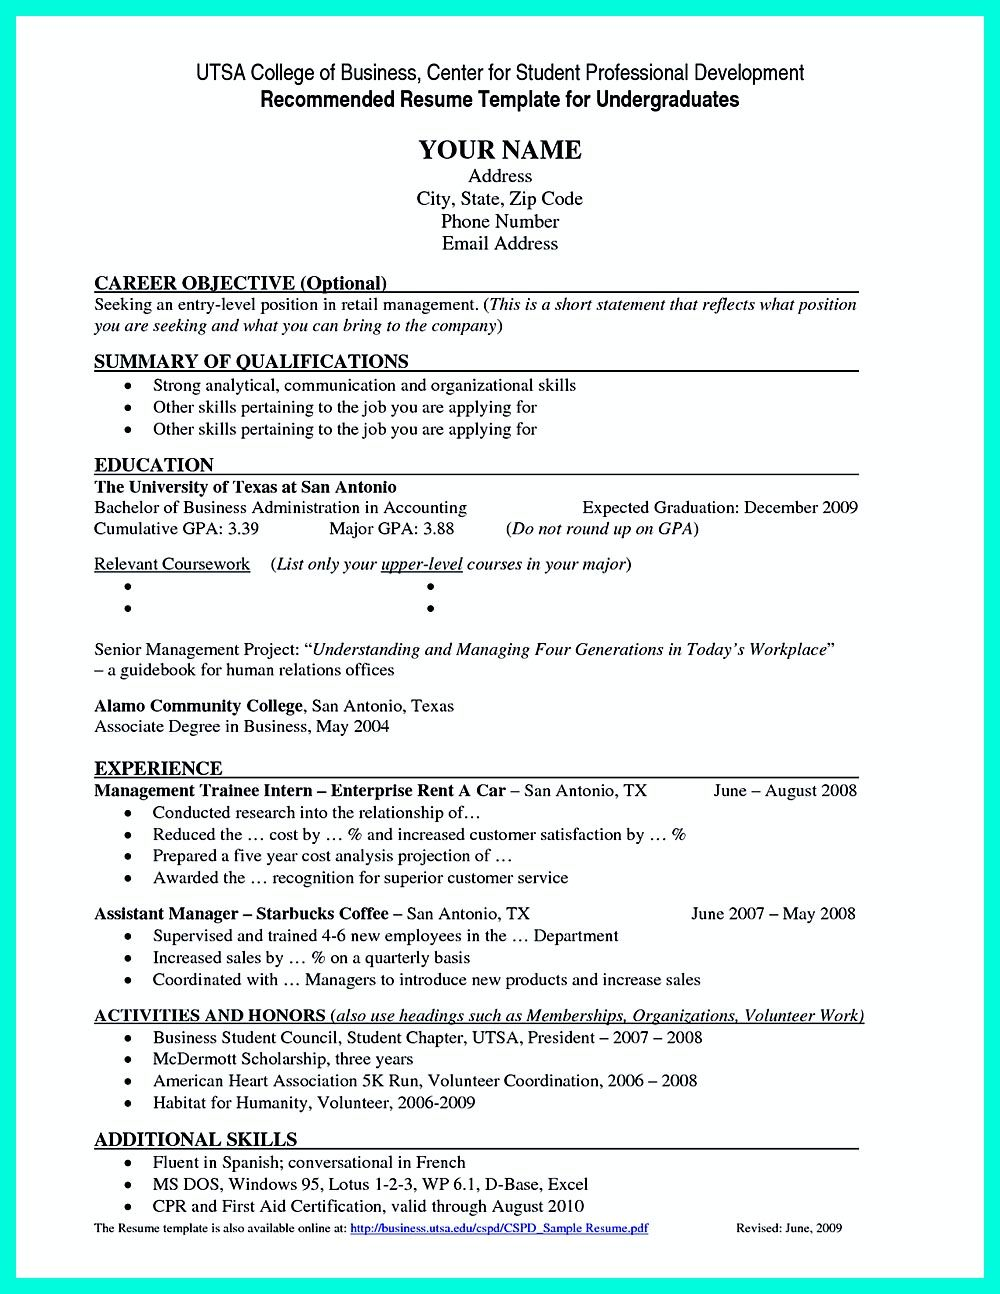 resume for a job you have no experience in